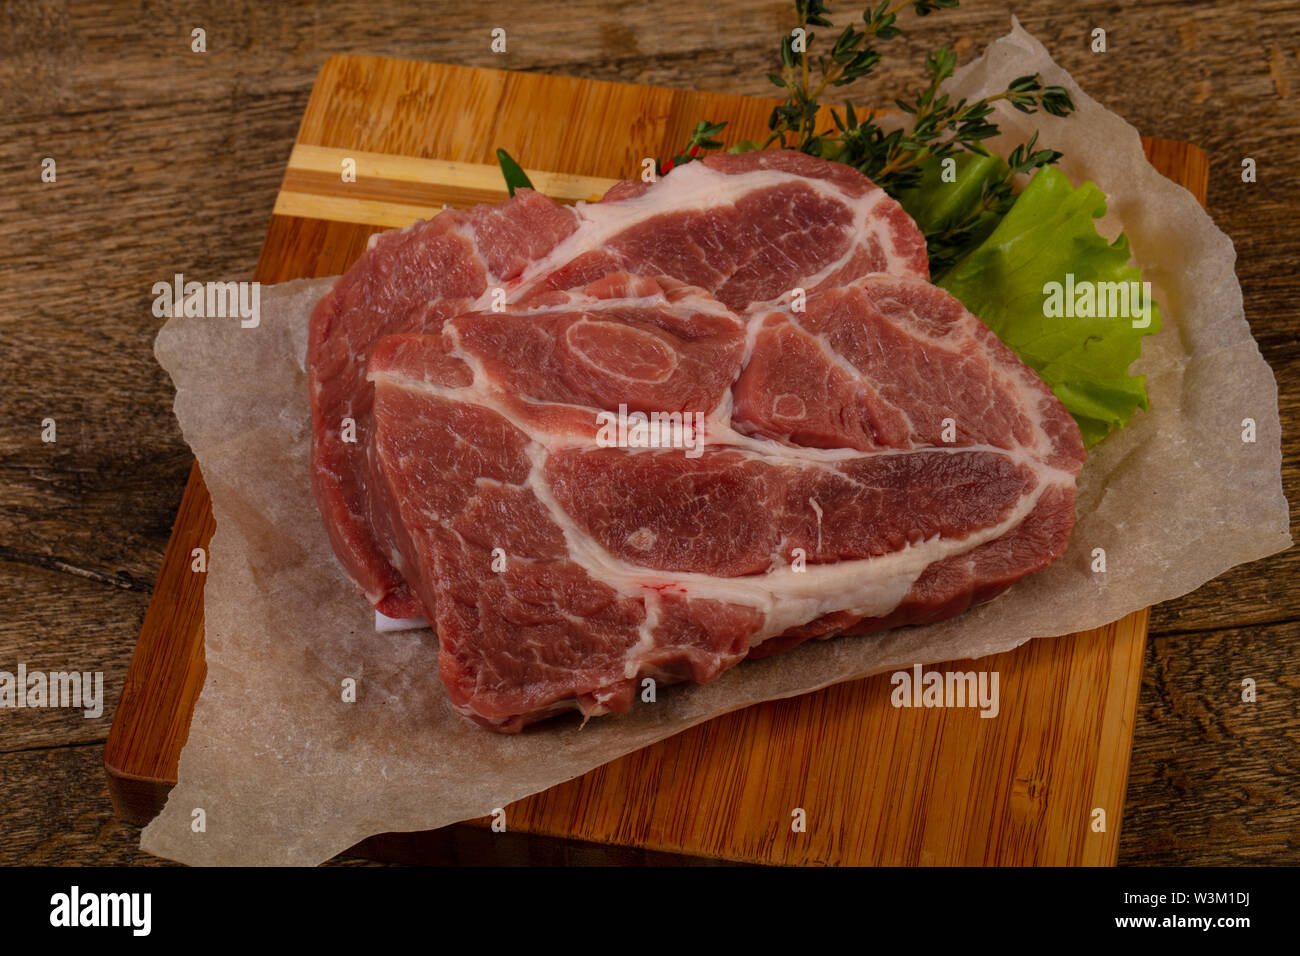 Raw pork steak ready for grill - Stock Image